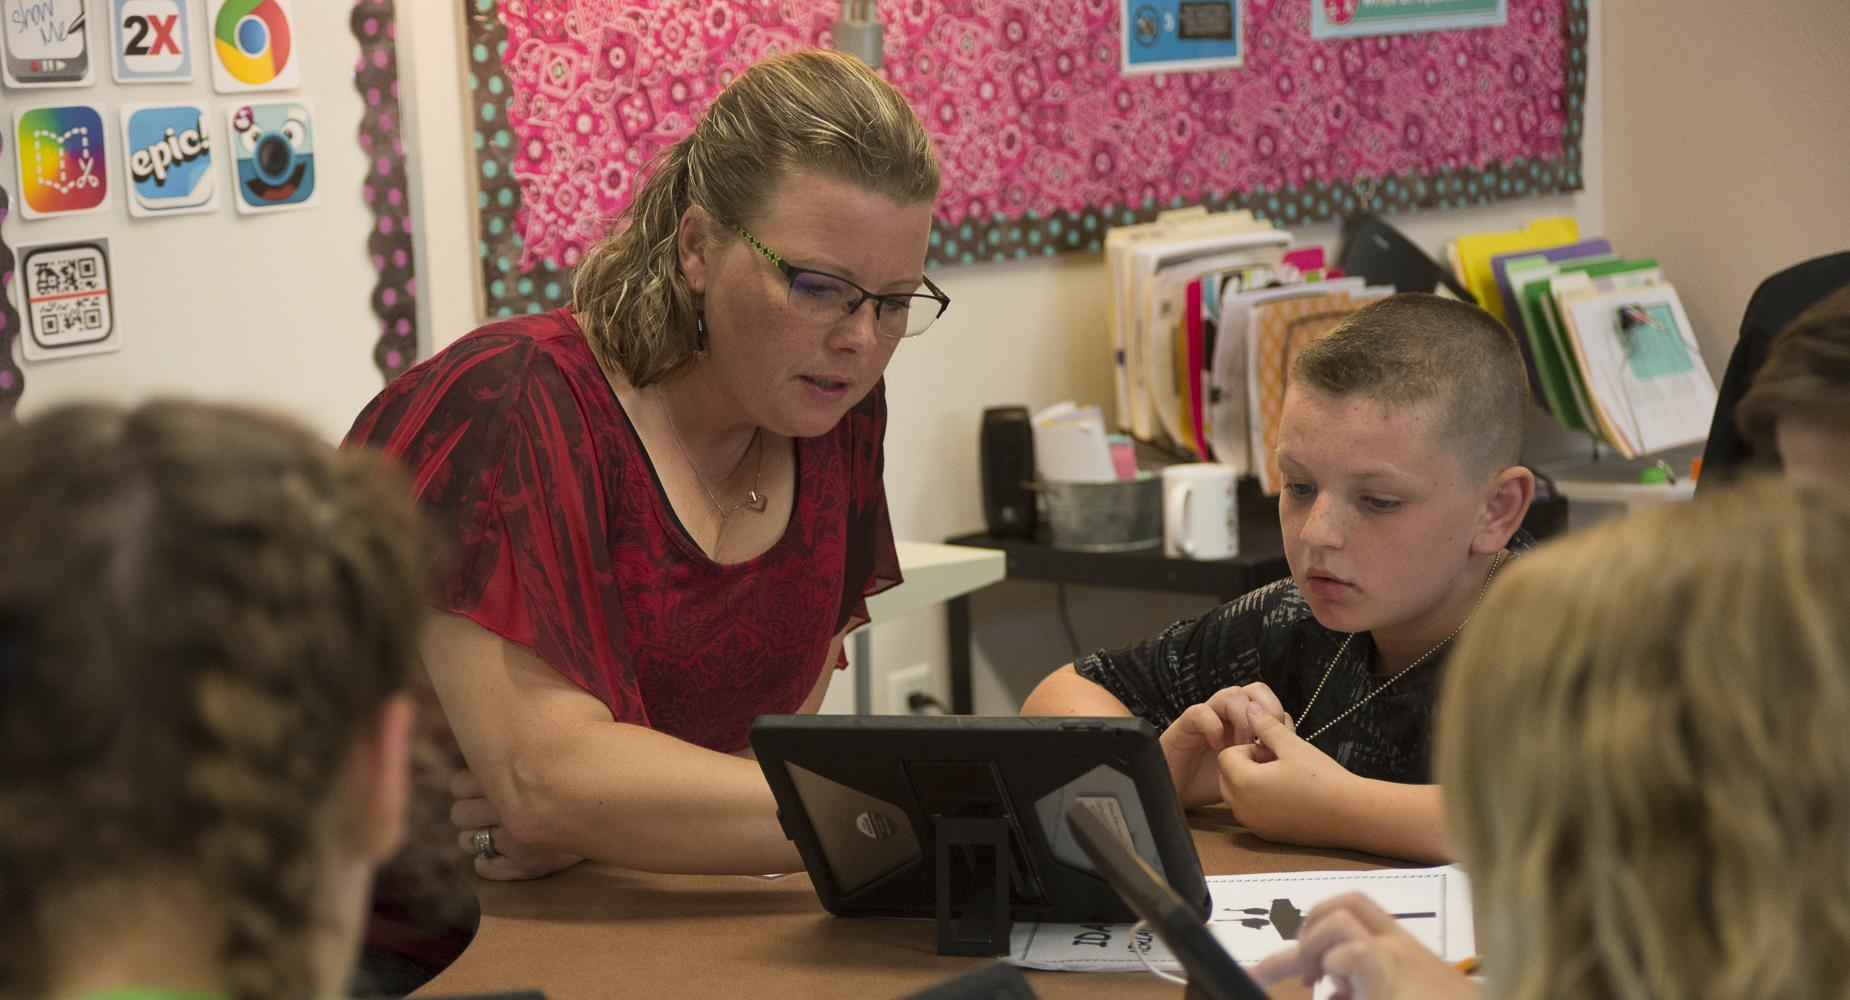 Teacher helps student on the iPad